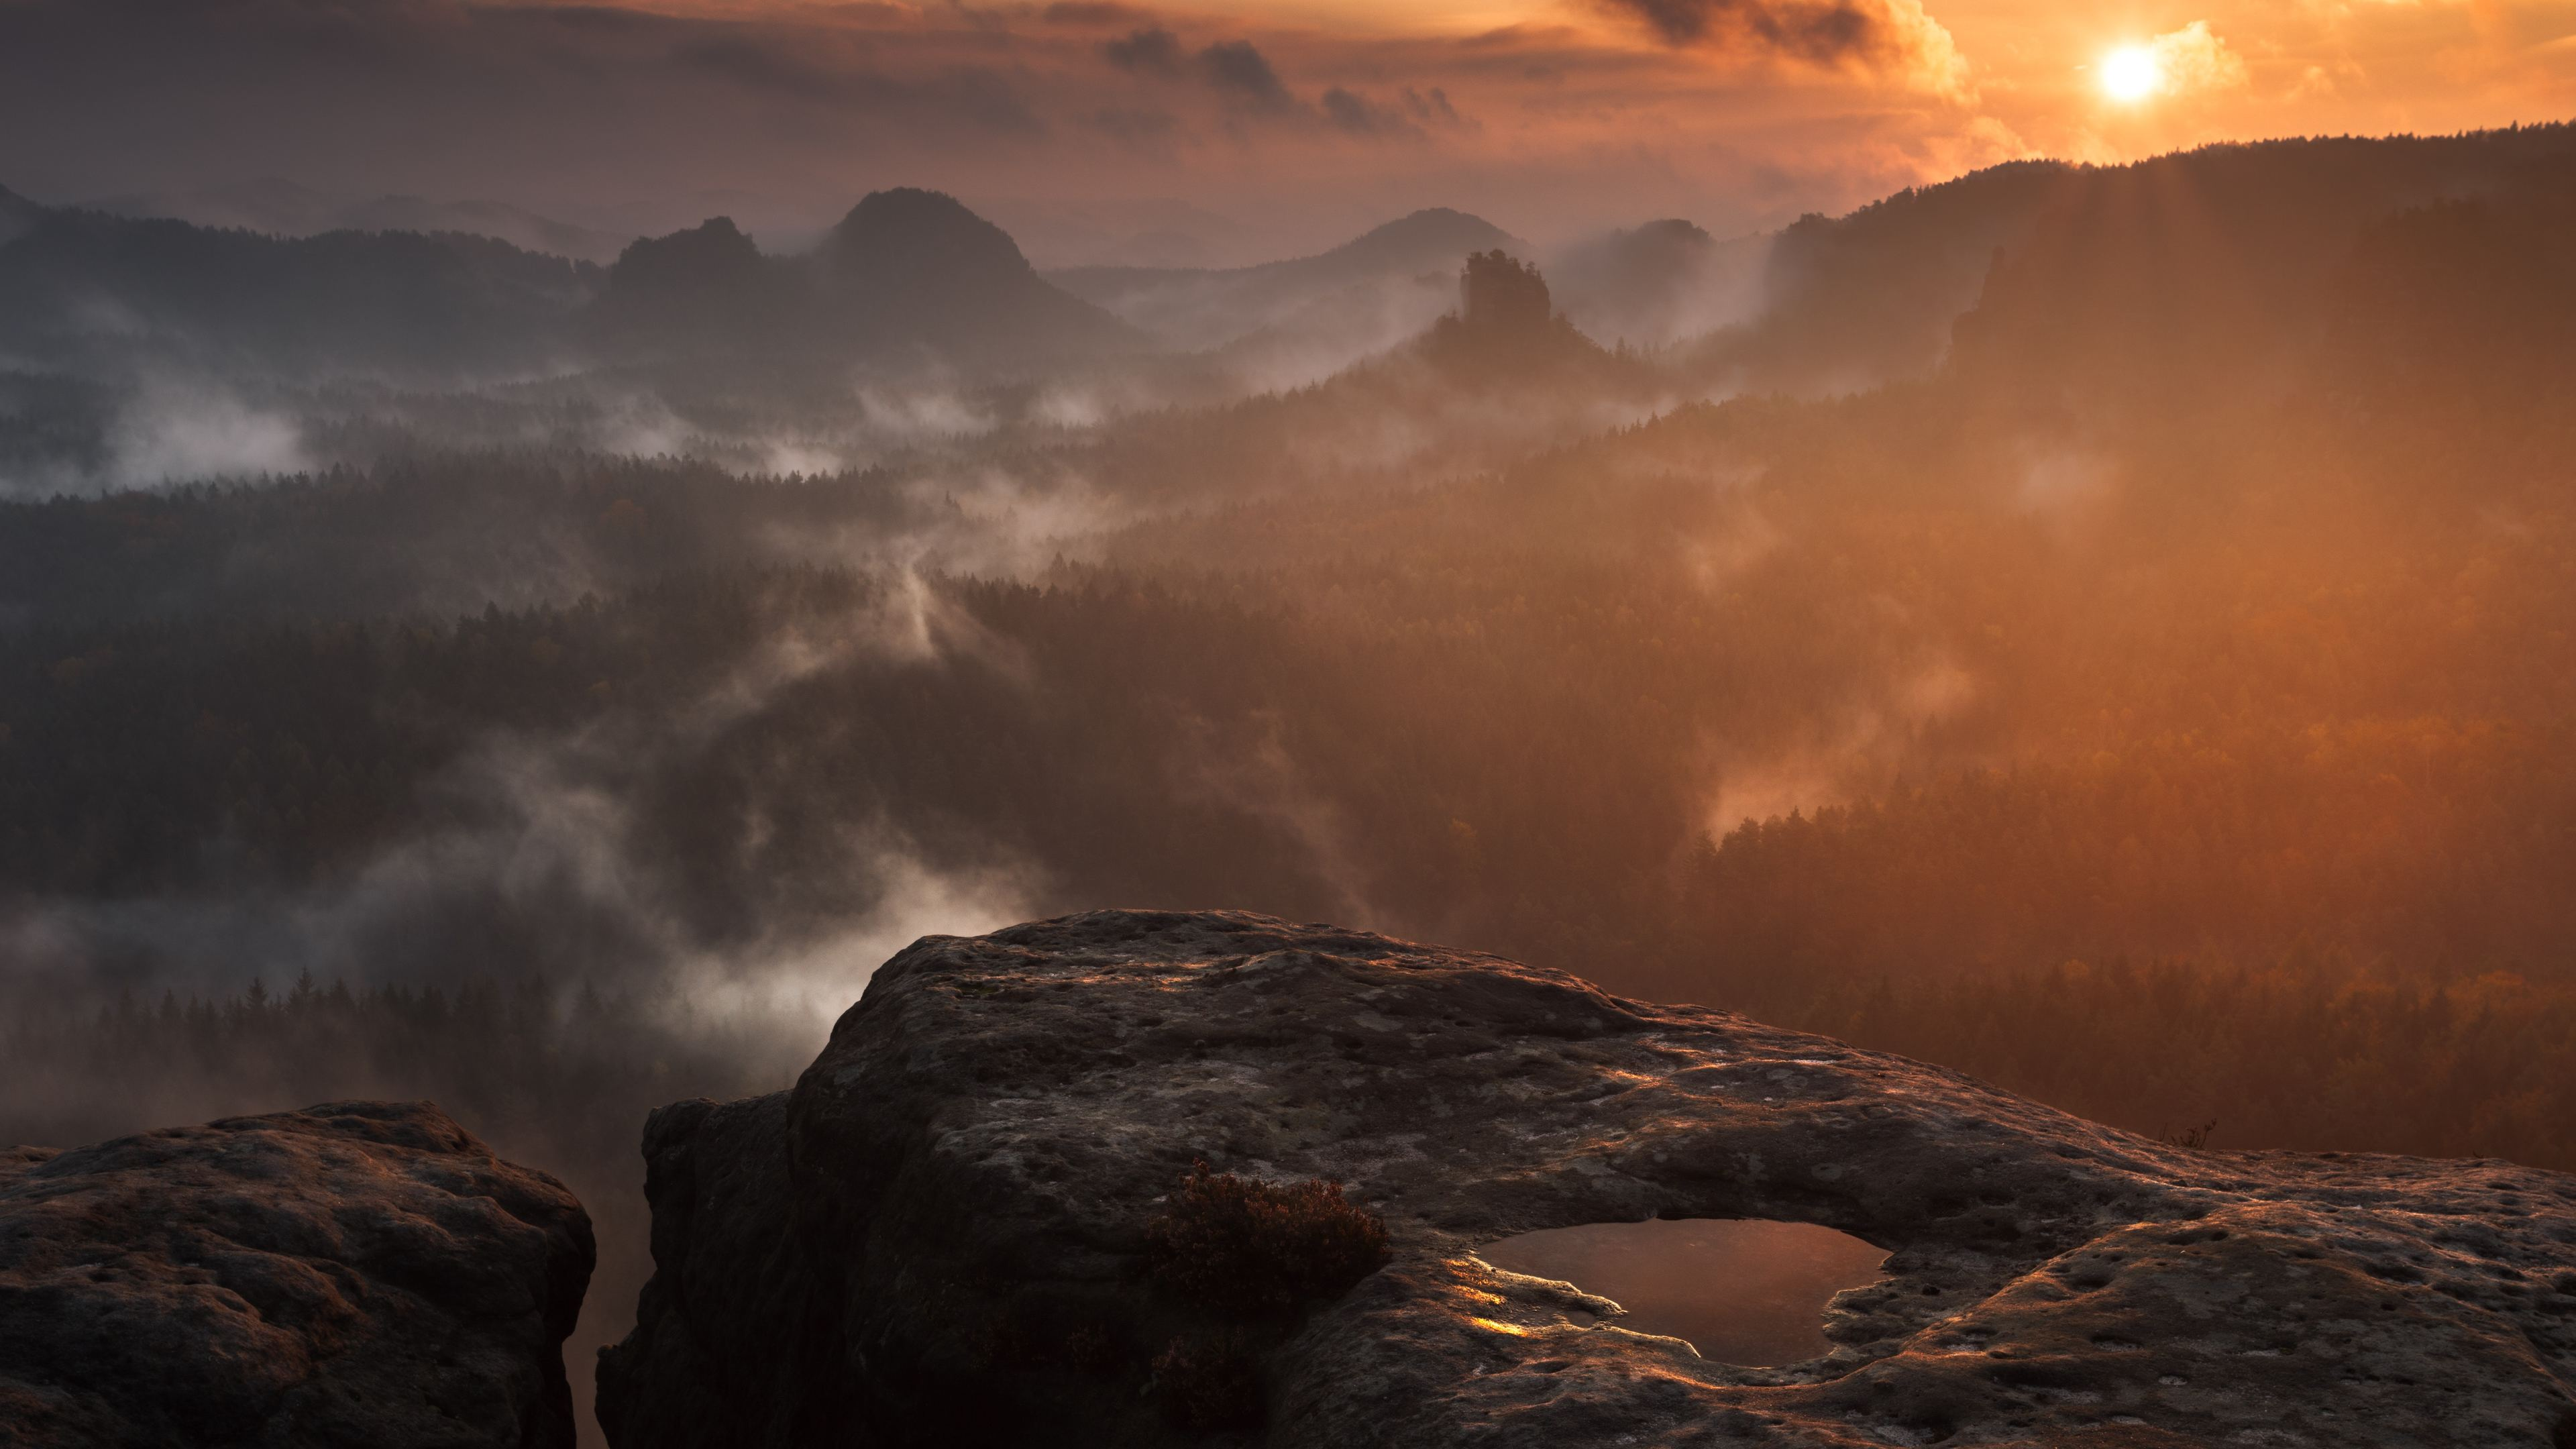 rock hill fog clouds forest sunset 4k 1540144776 - Rock Hill Fog Clouds Forest Sunset 4k - sunset wallpapers, rocks wallpapers, nature wallpapers, hd-wallpapers, forest wallpapers, fog wallpapers, clouds wallpapers, 5k wallpapers, 4k-wallpapers